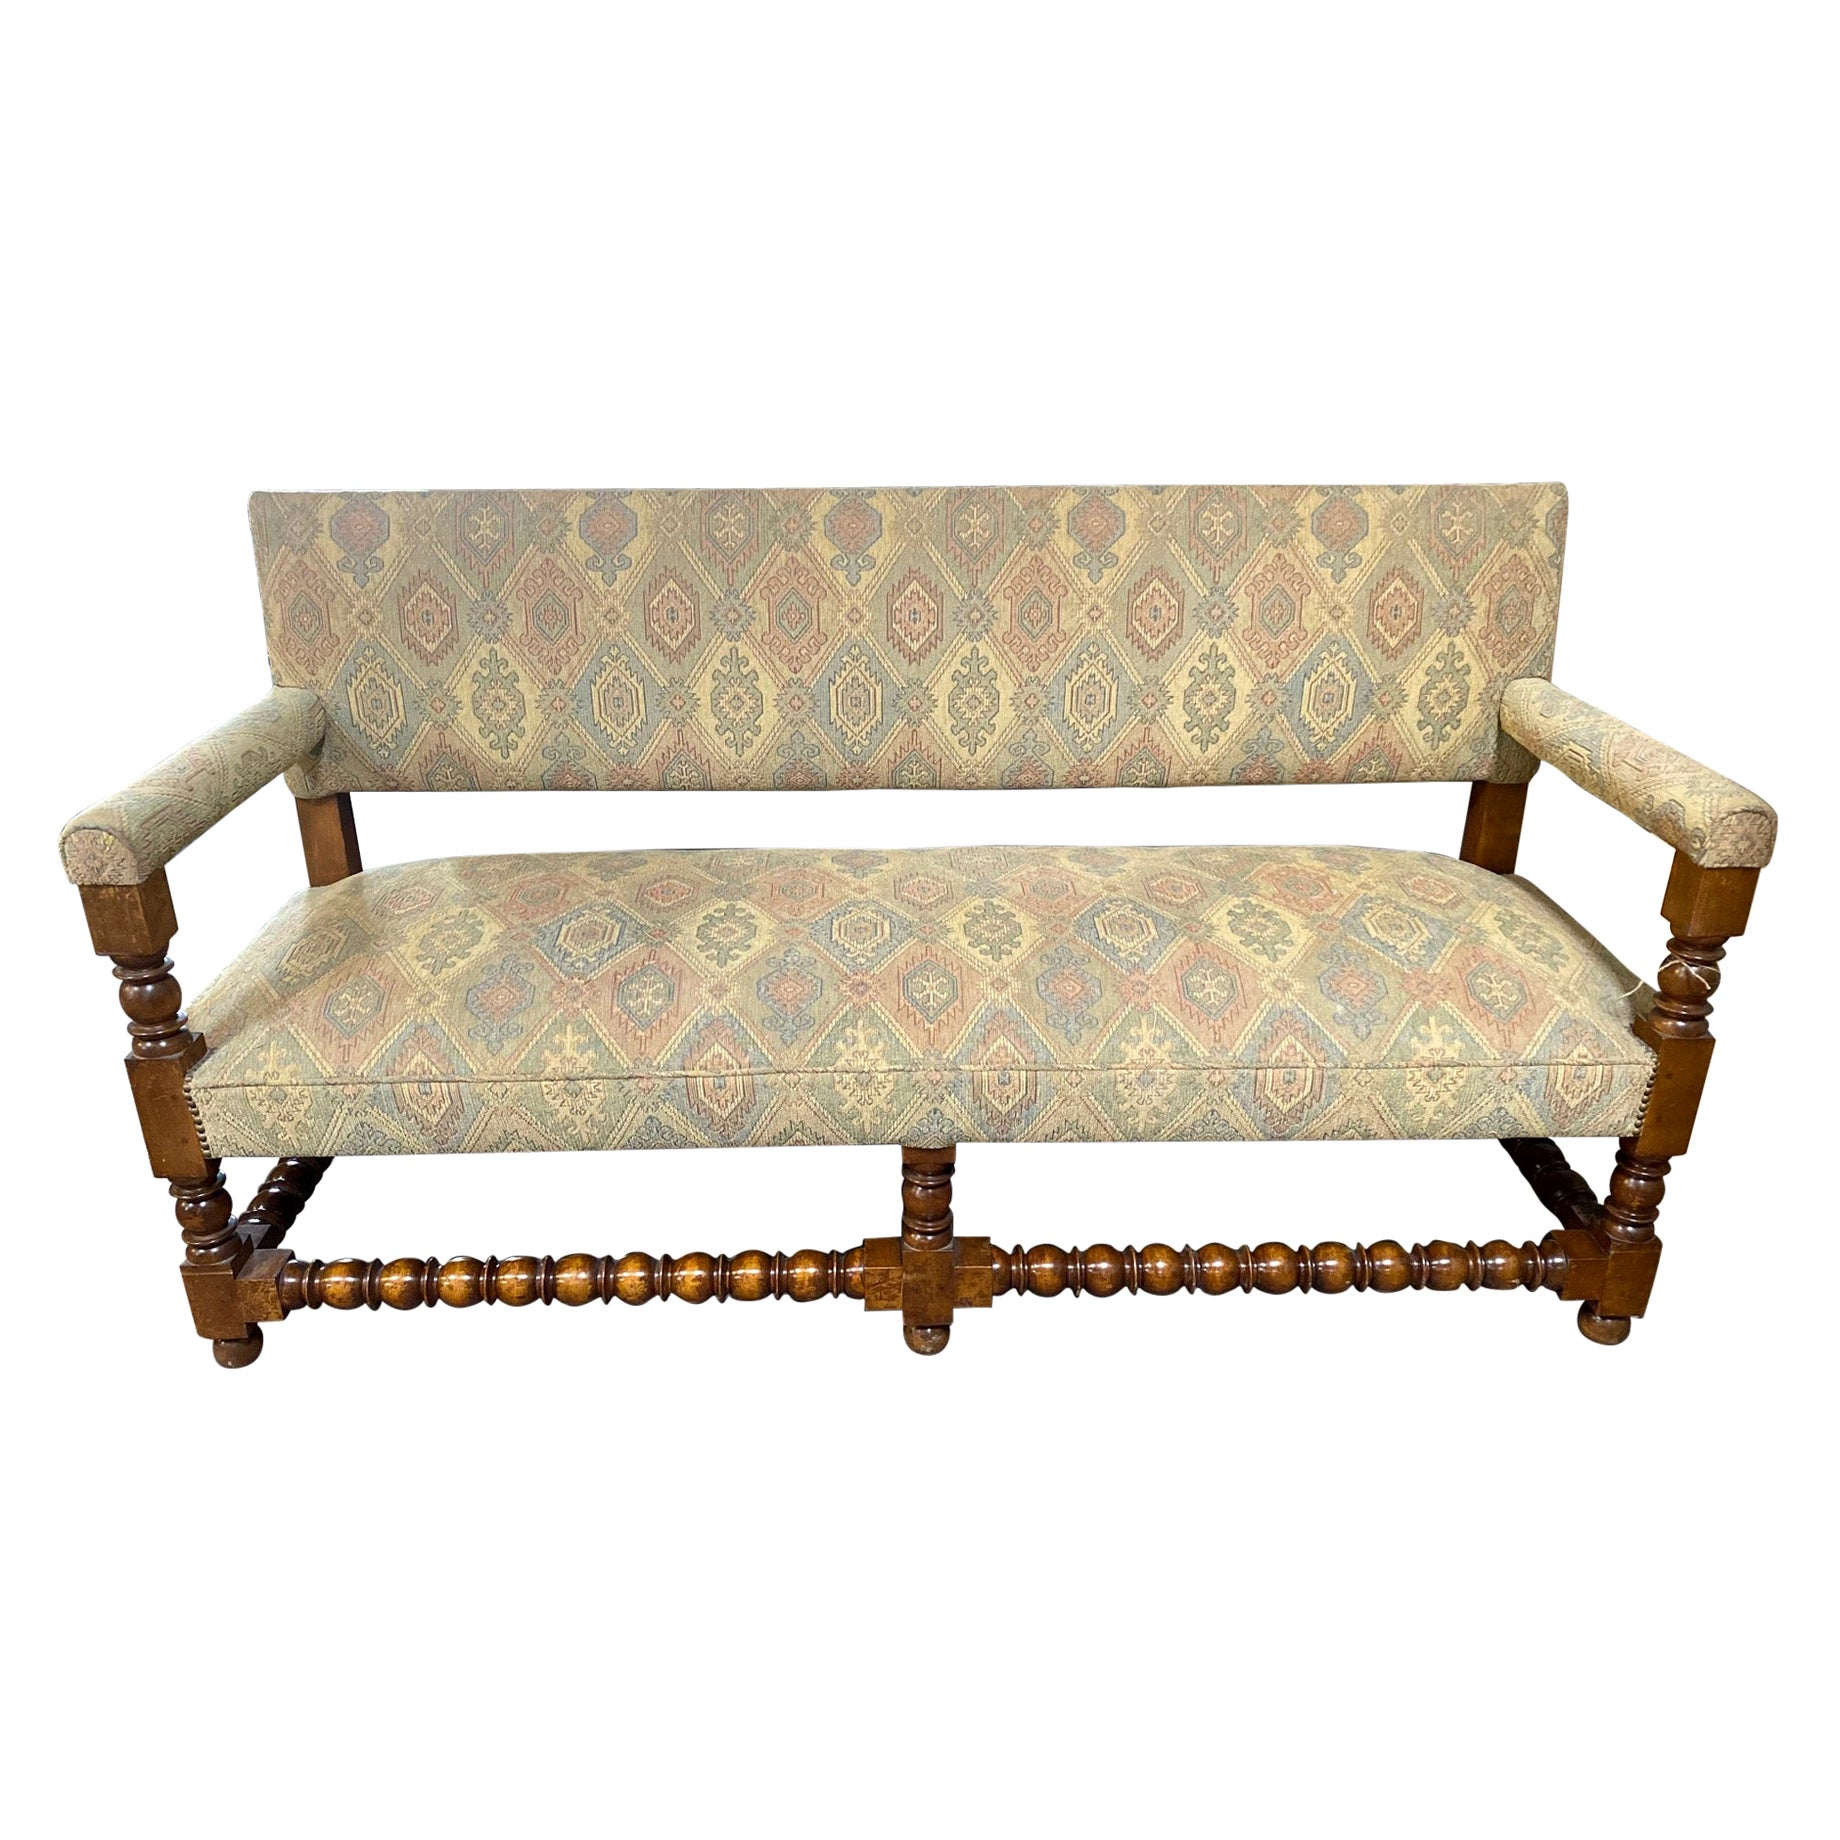 Antique French Upholstered Bench